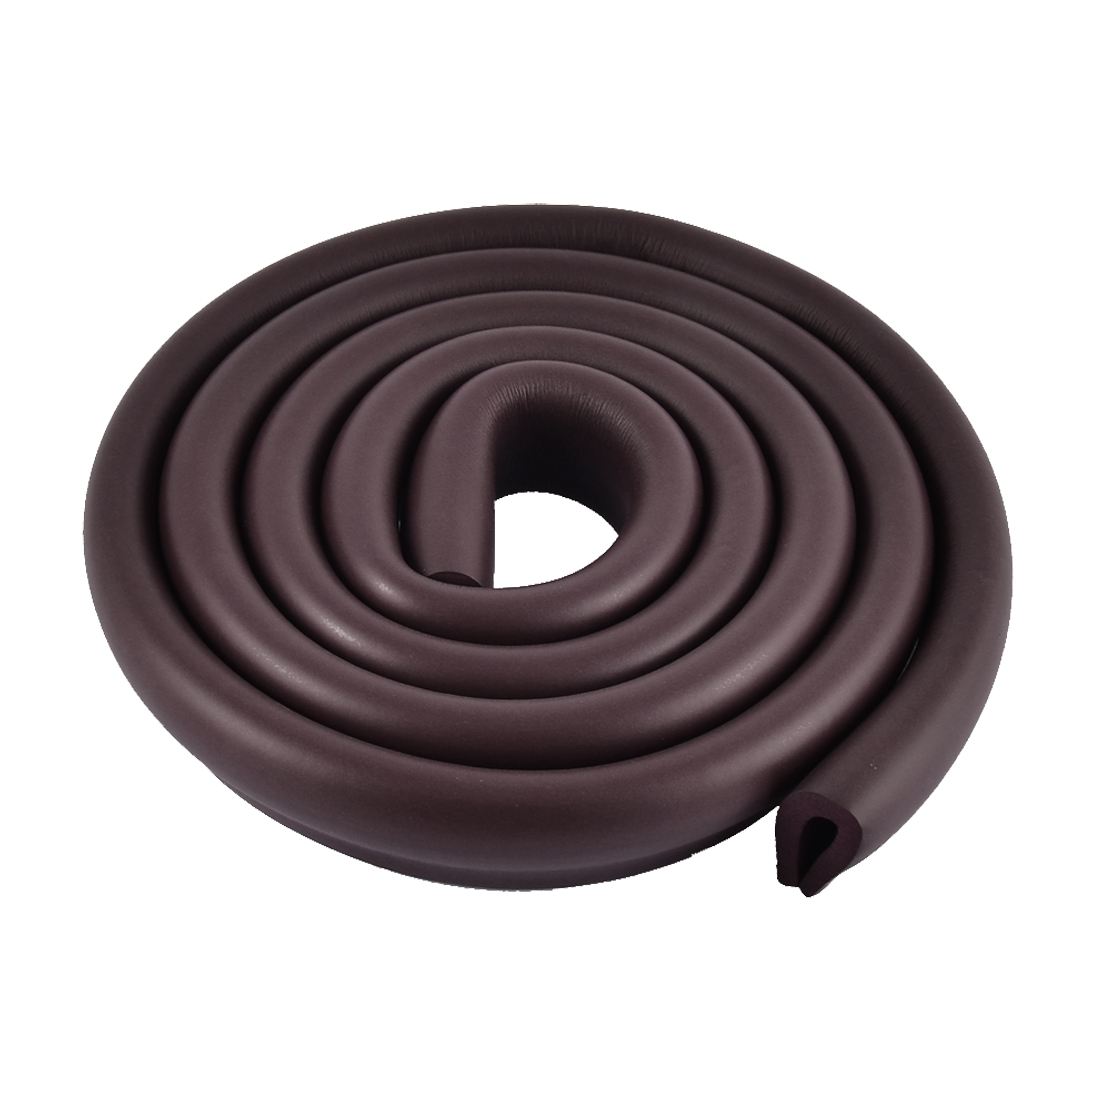 Table Corner Softener Safety Protection Cushion Guard 2M Long Black